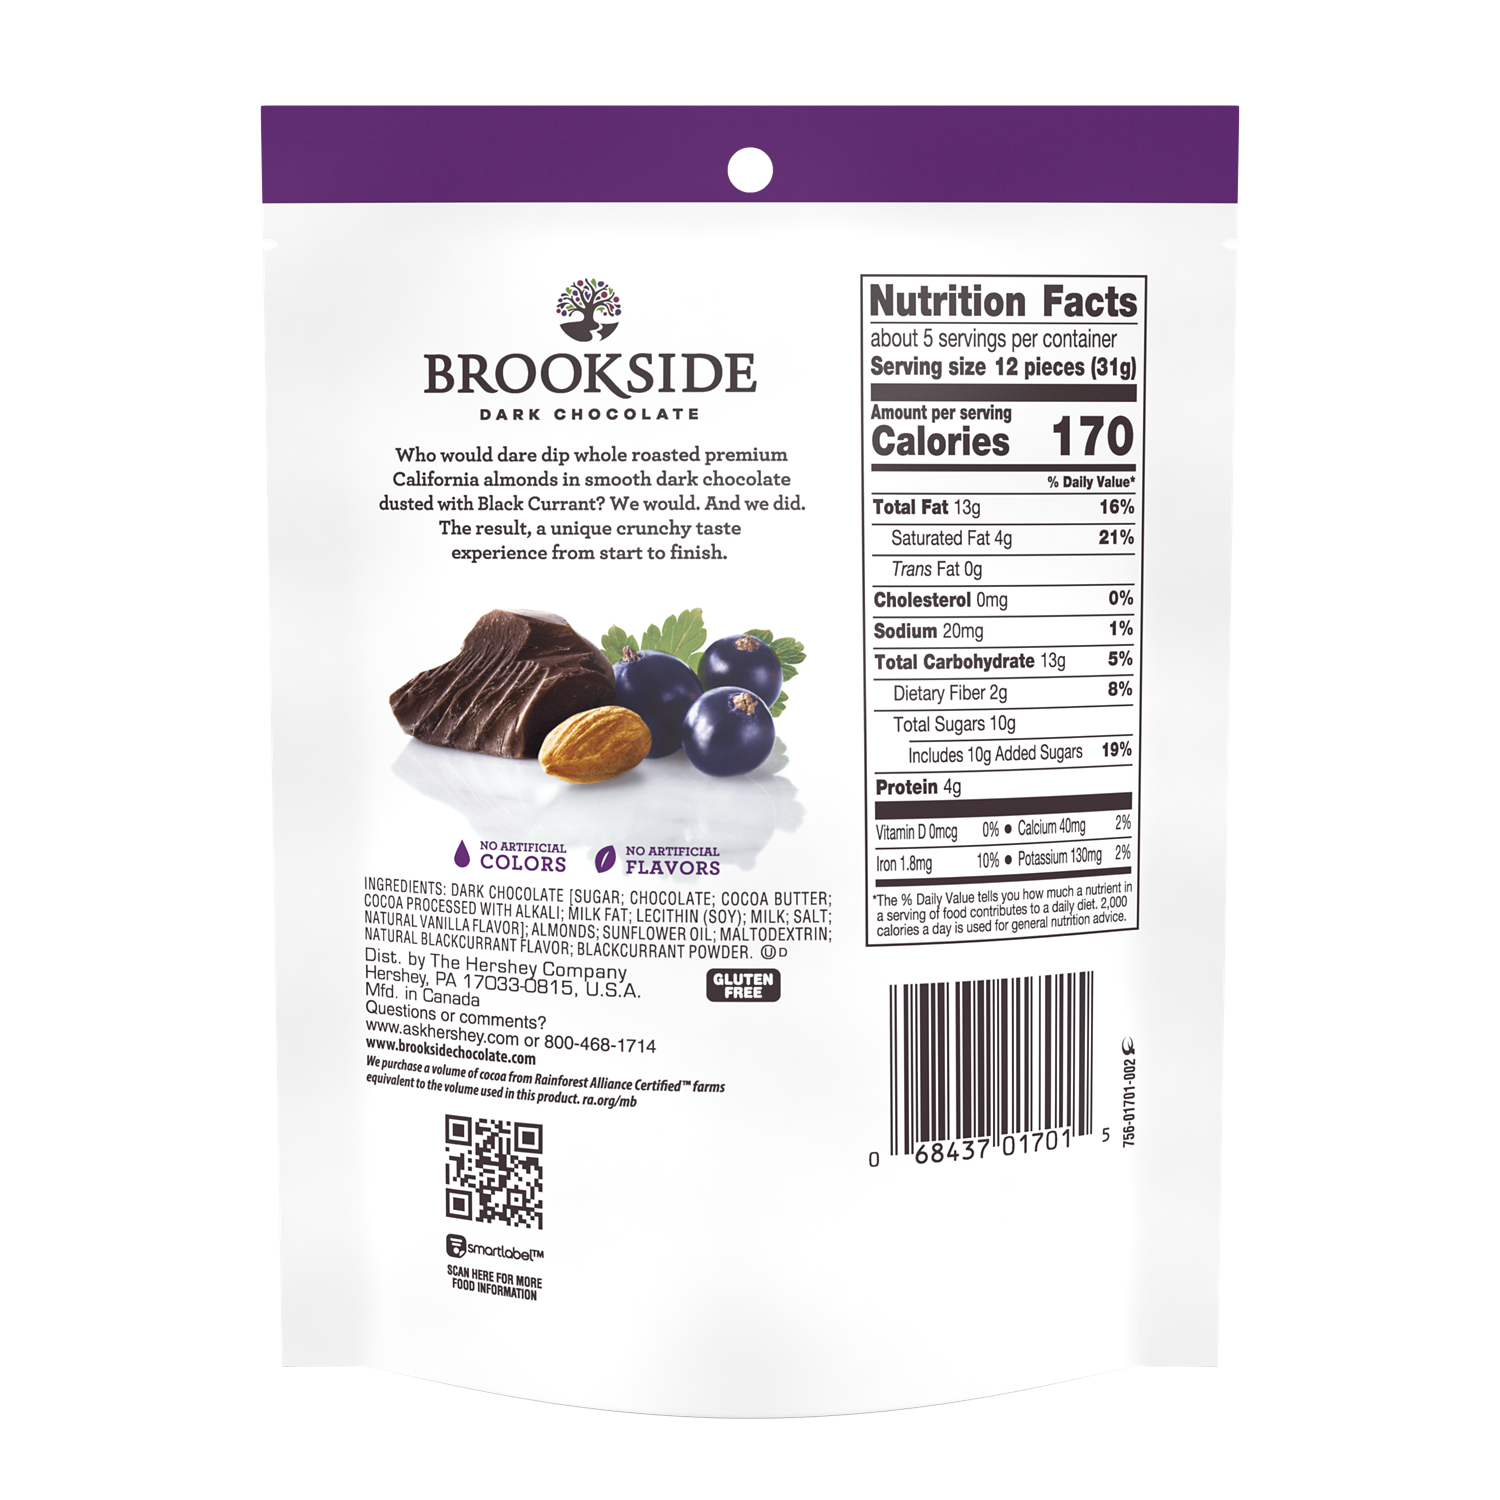 BROOKSIDE Dark Chocolate Whole Almonds Dusted with Black Currant Candy, 5.5 oz bag - Back of Package